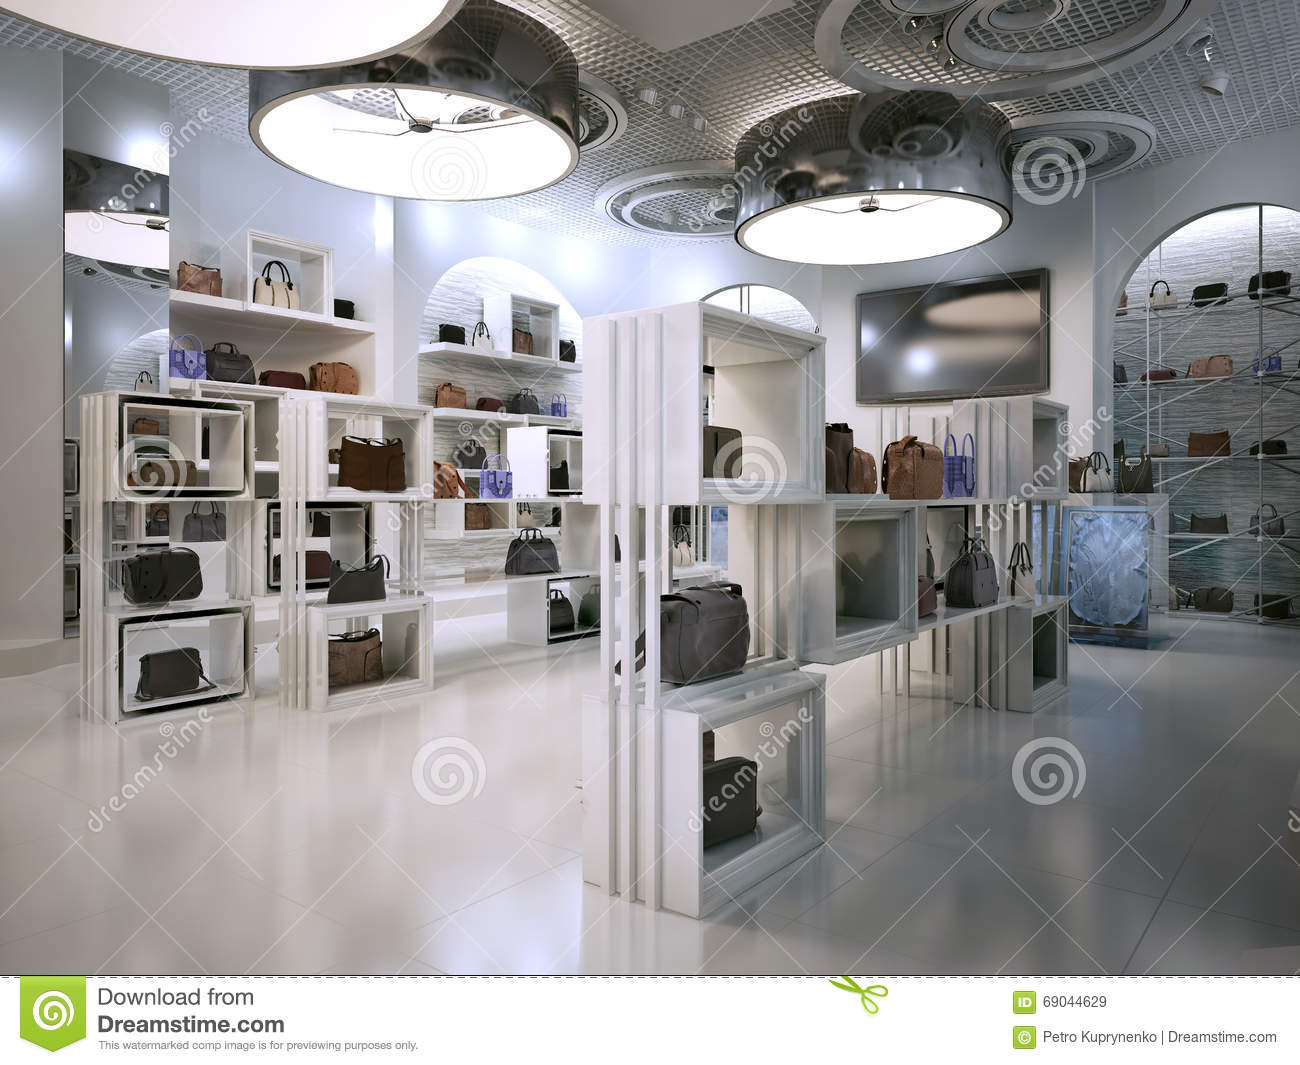 Luxury store interior design art deco style with hints of for Deco de interiores